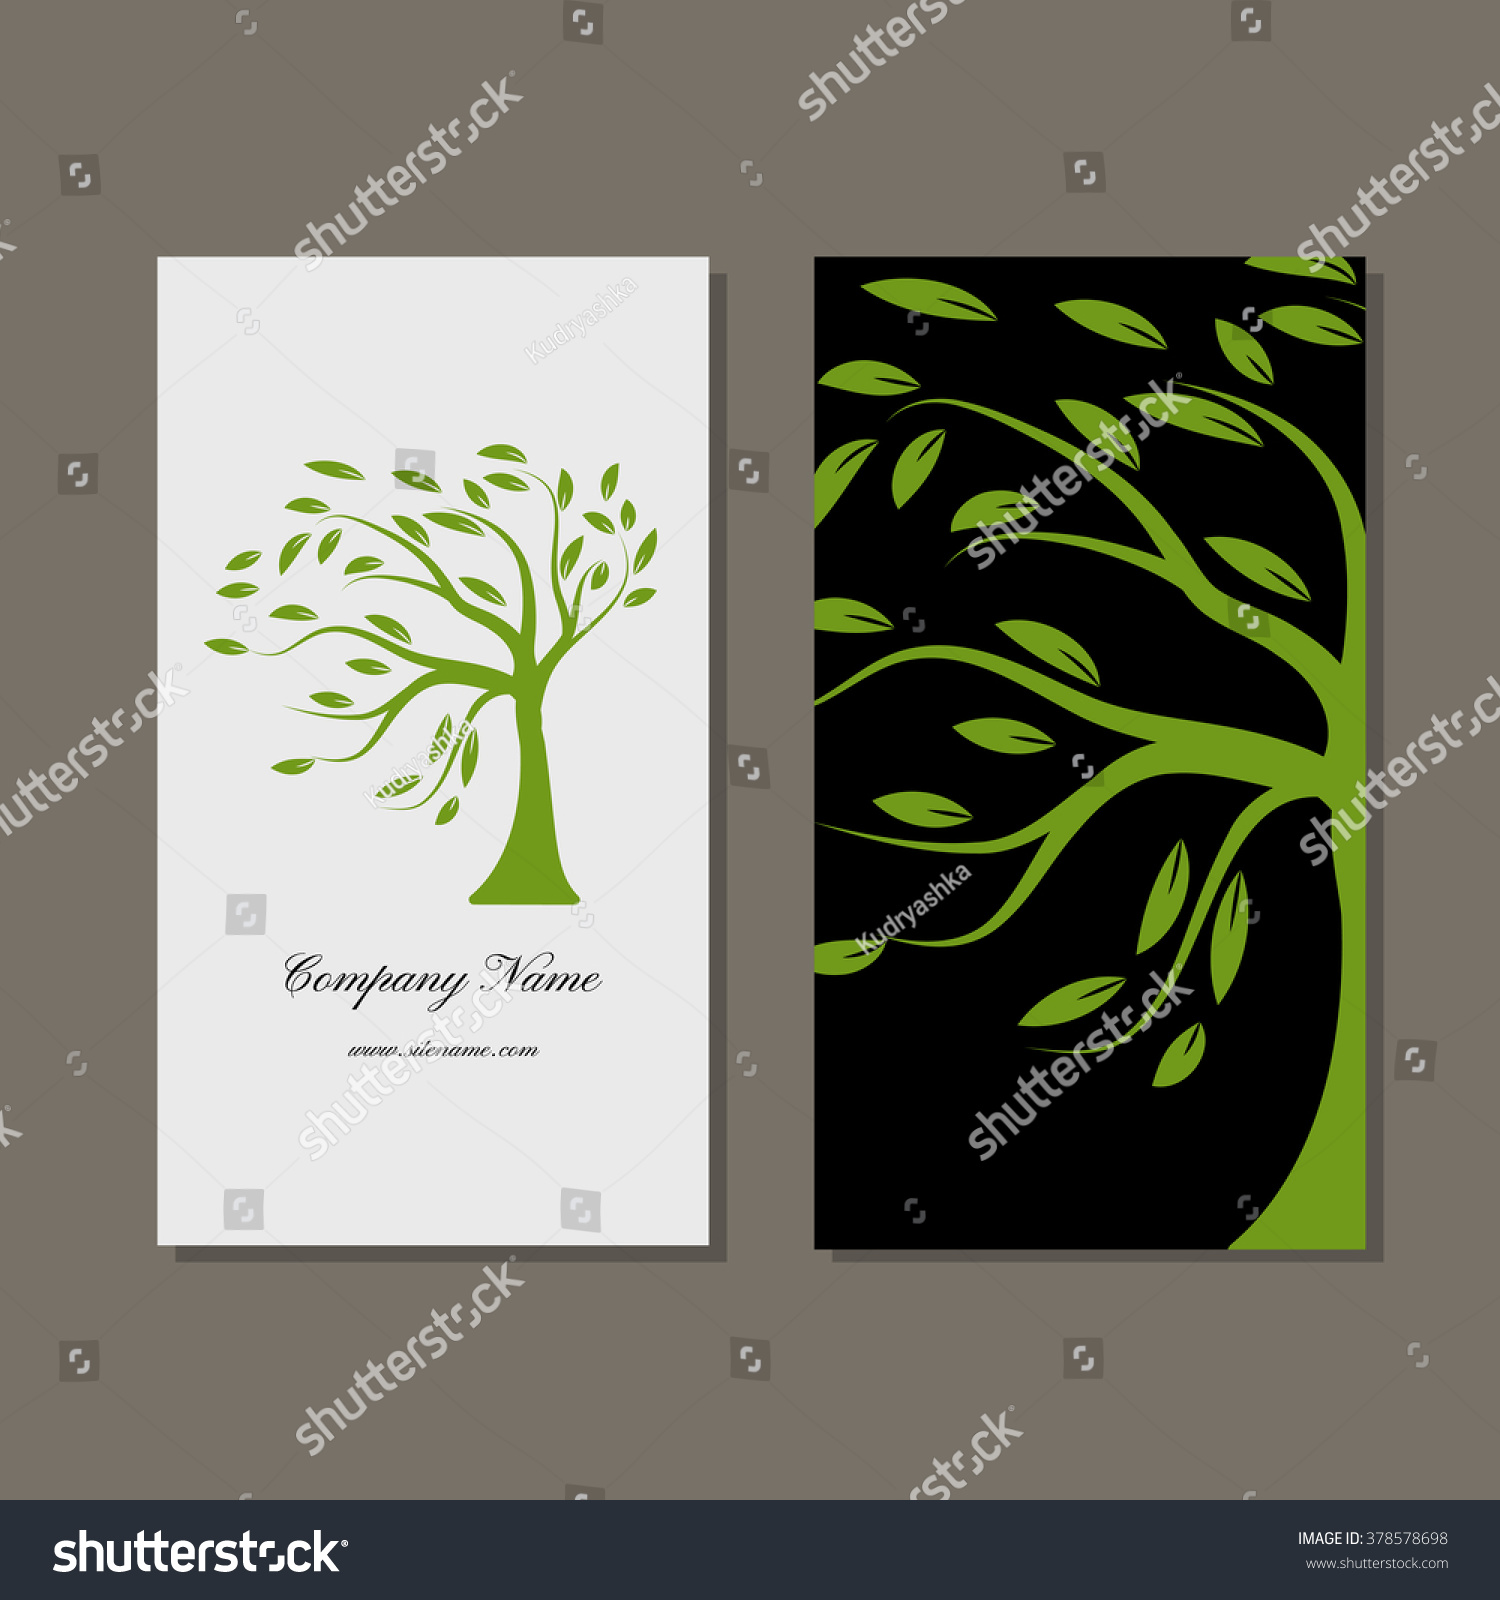 Business card design green tree stock vector 378578698 shutterstock business card design green tree magicingreecefo Choice Image